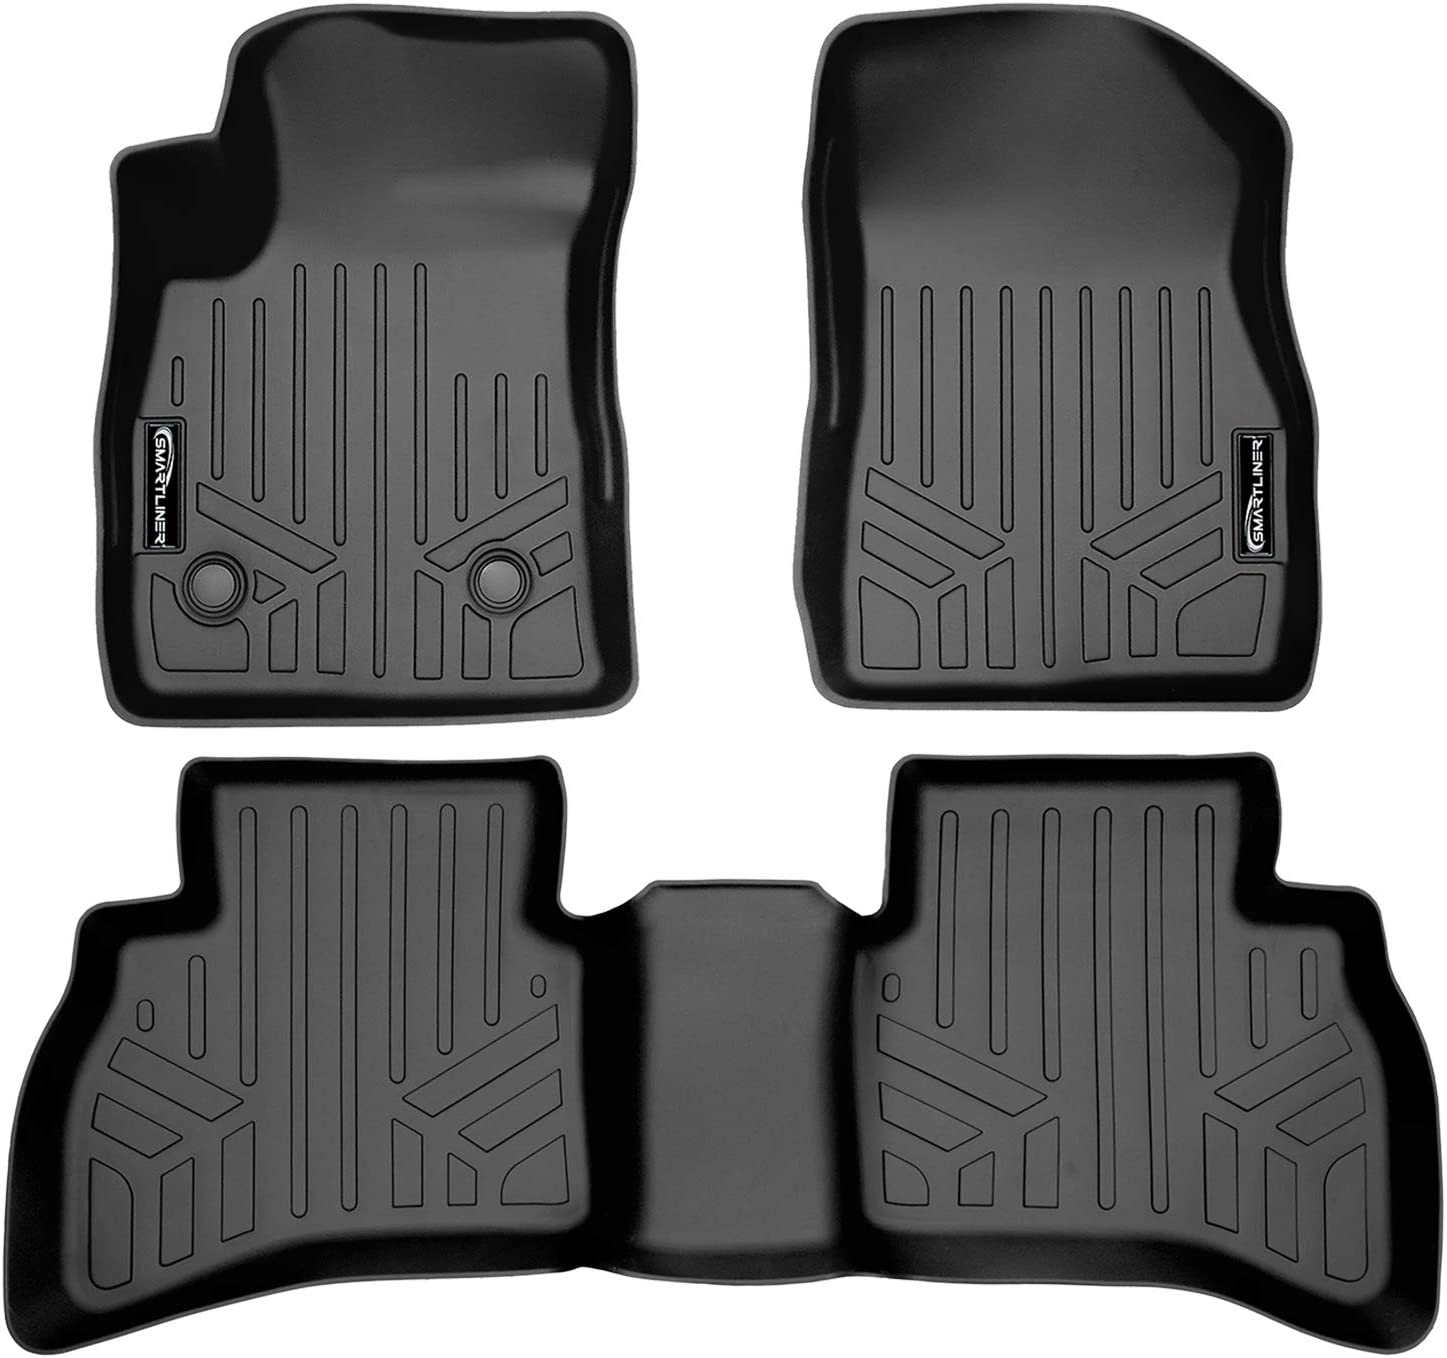 GGBAILEY D3967A-S1A-CH-BR Custom Fit Automotive Carpet Floor Mats for 1994 1996 Passenger /& Rear 1995 1997 BMW 8 Series Coupe Brown Driver